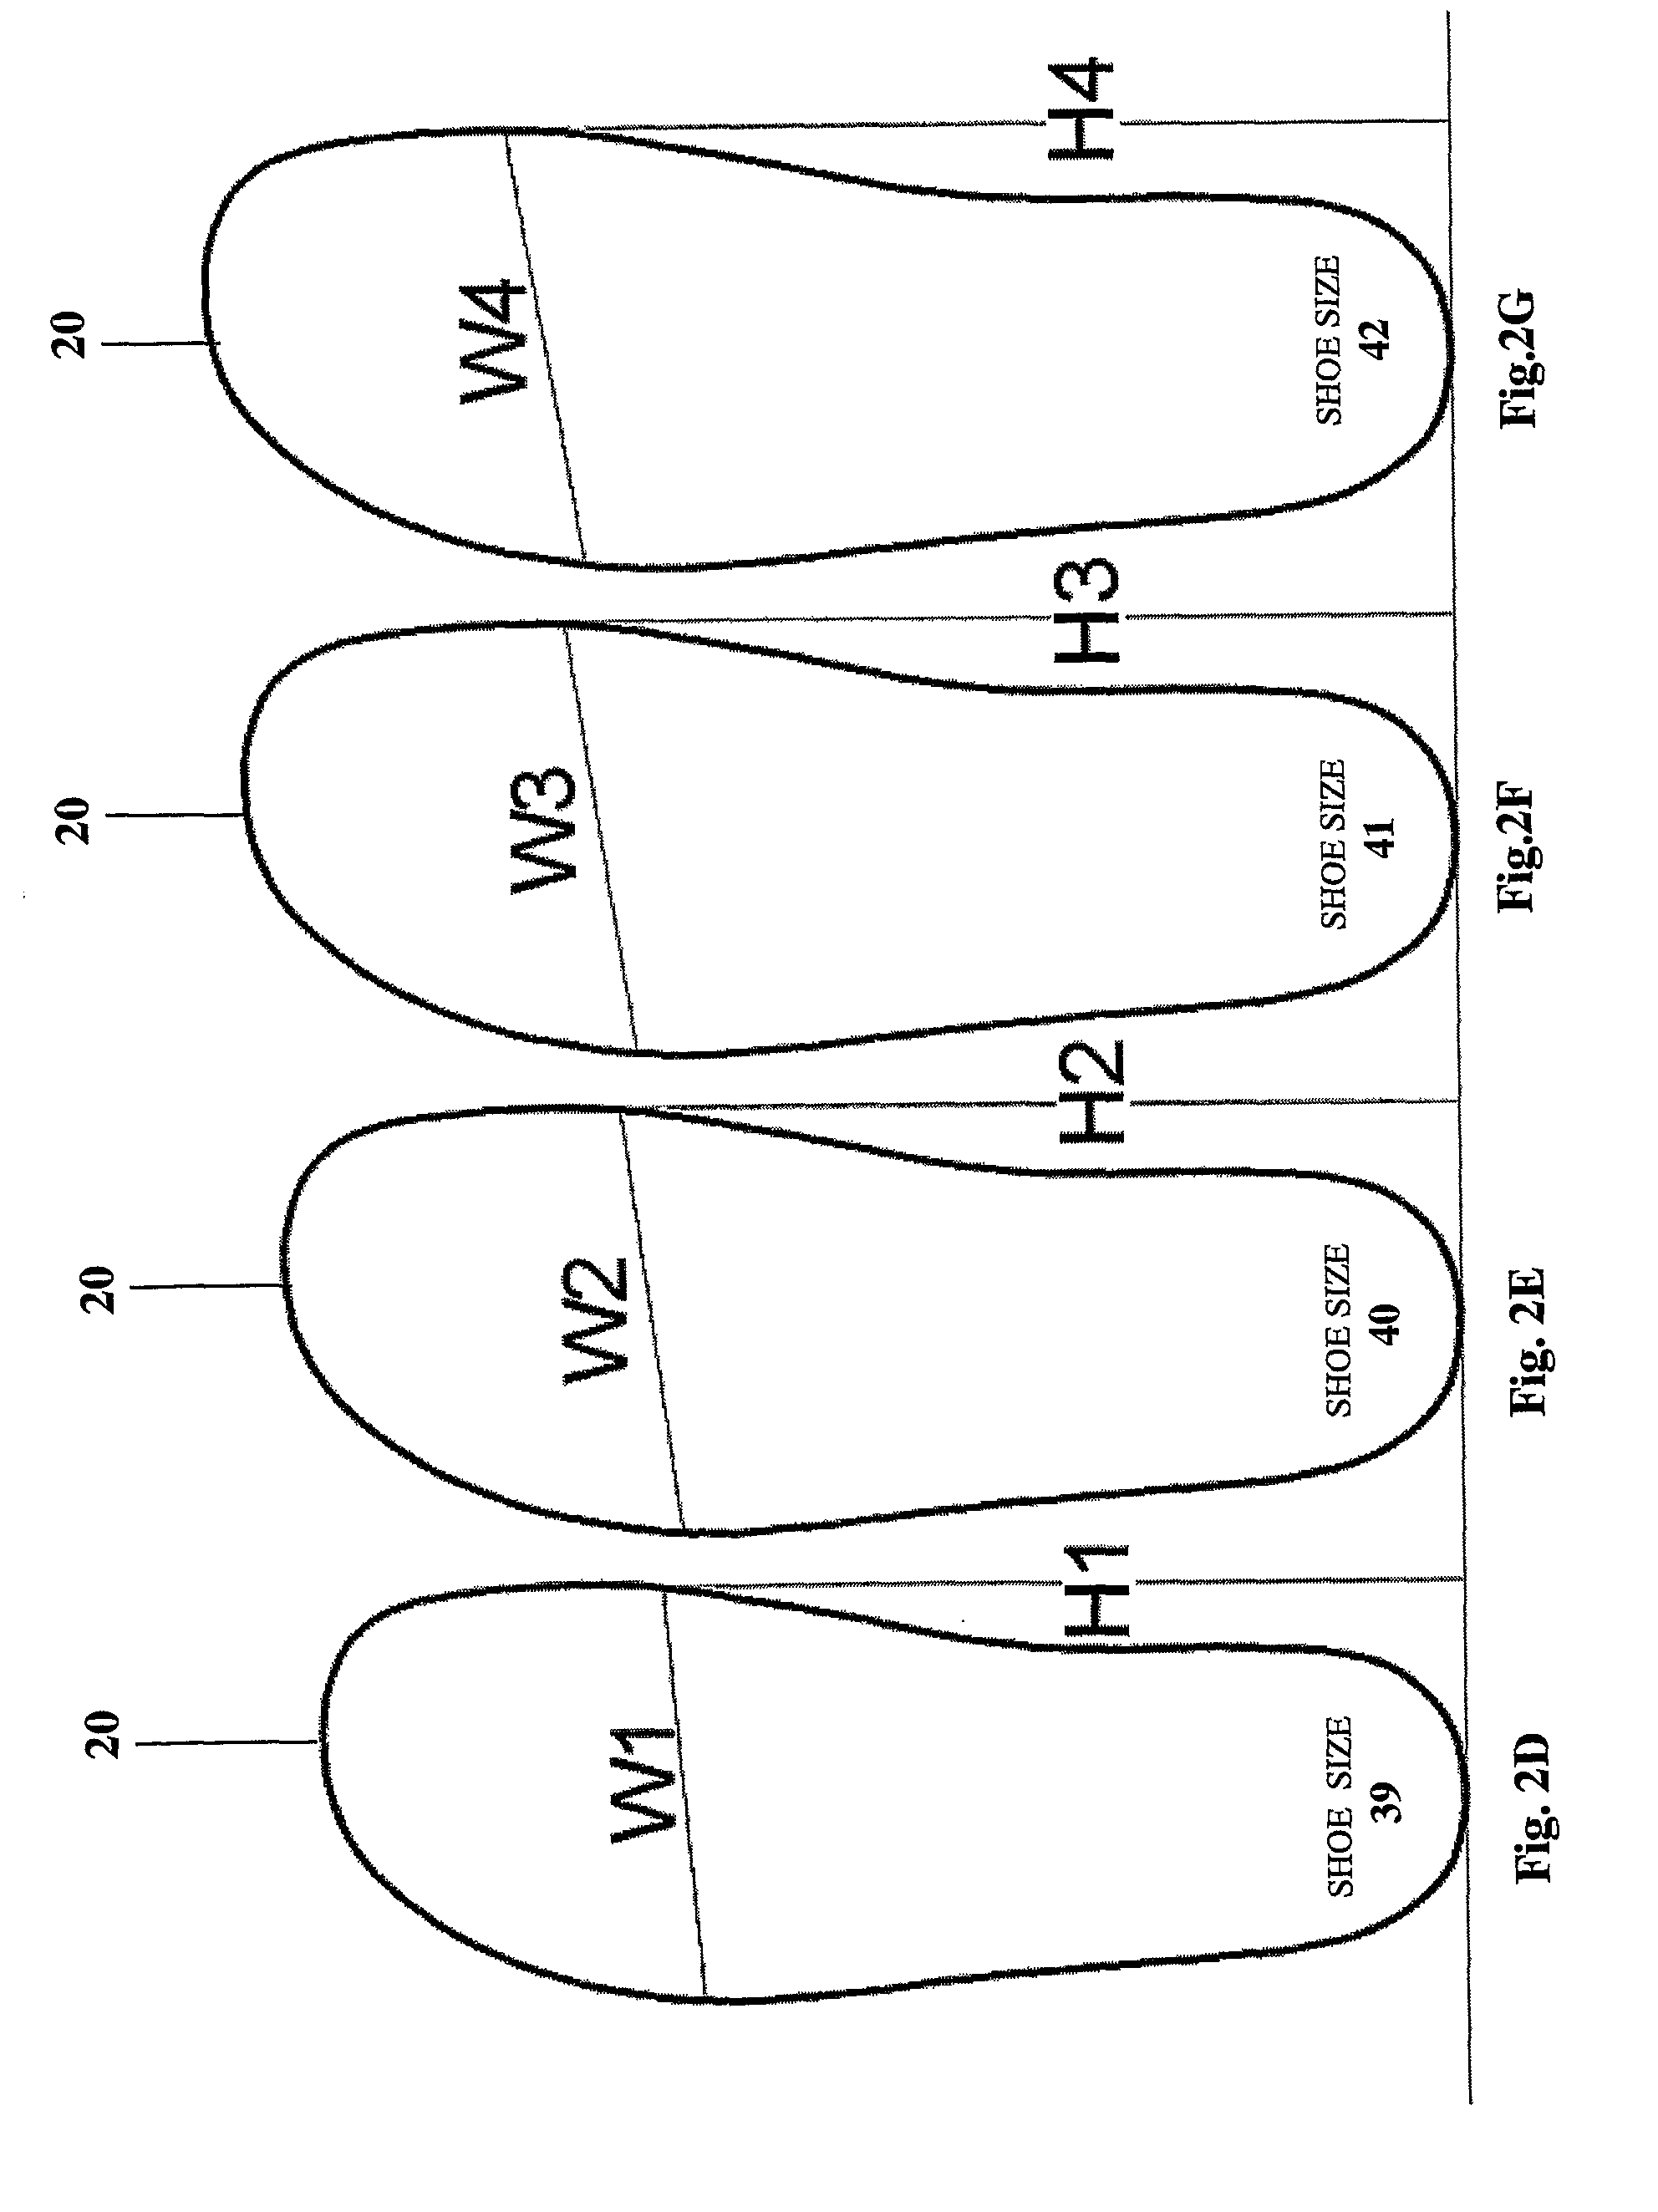 1984 x 2647 png 52kB, Shoe Outline Template Patent us8406454 - method ...